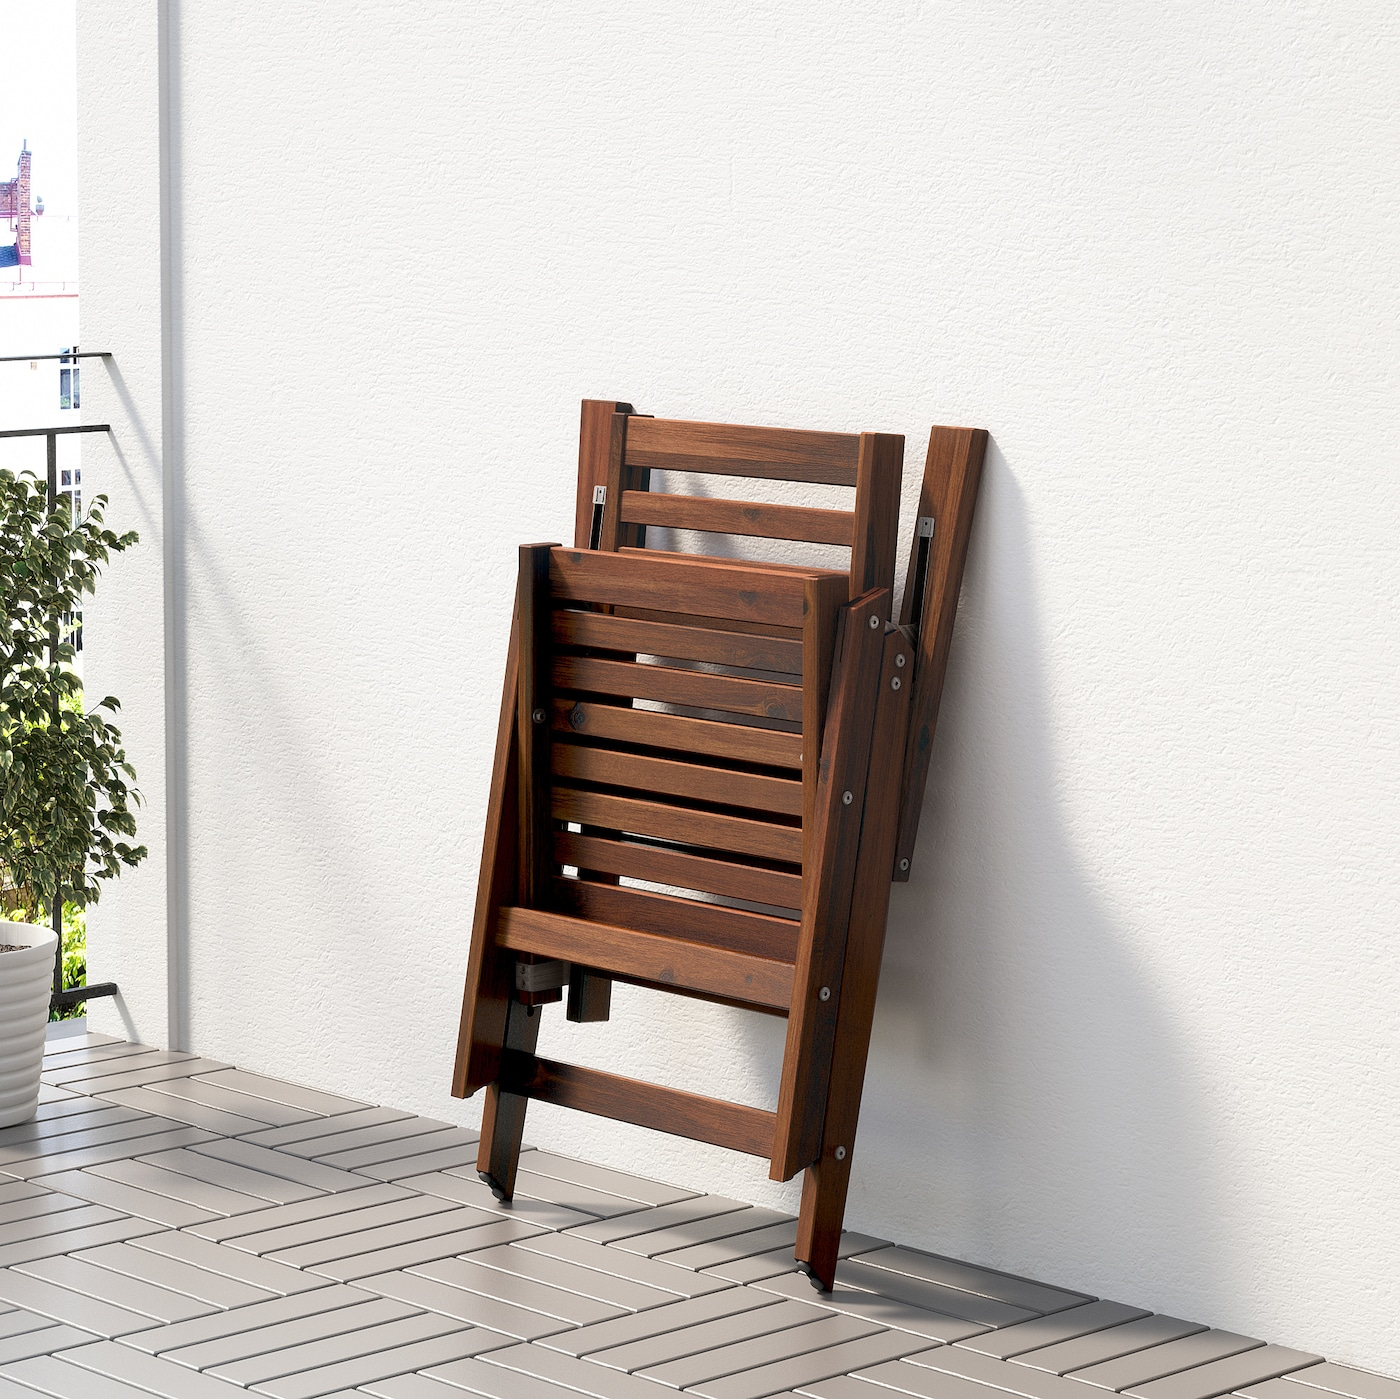 ÄPPLARÖ Reclining chair, outdoor brown foldable brown stained brown